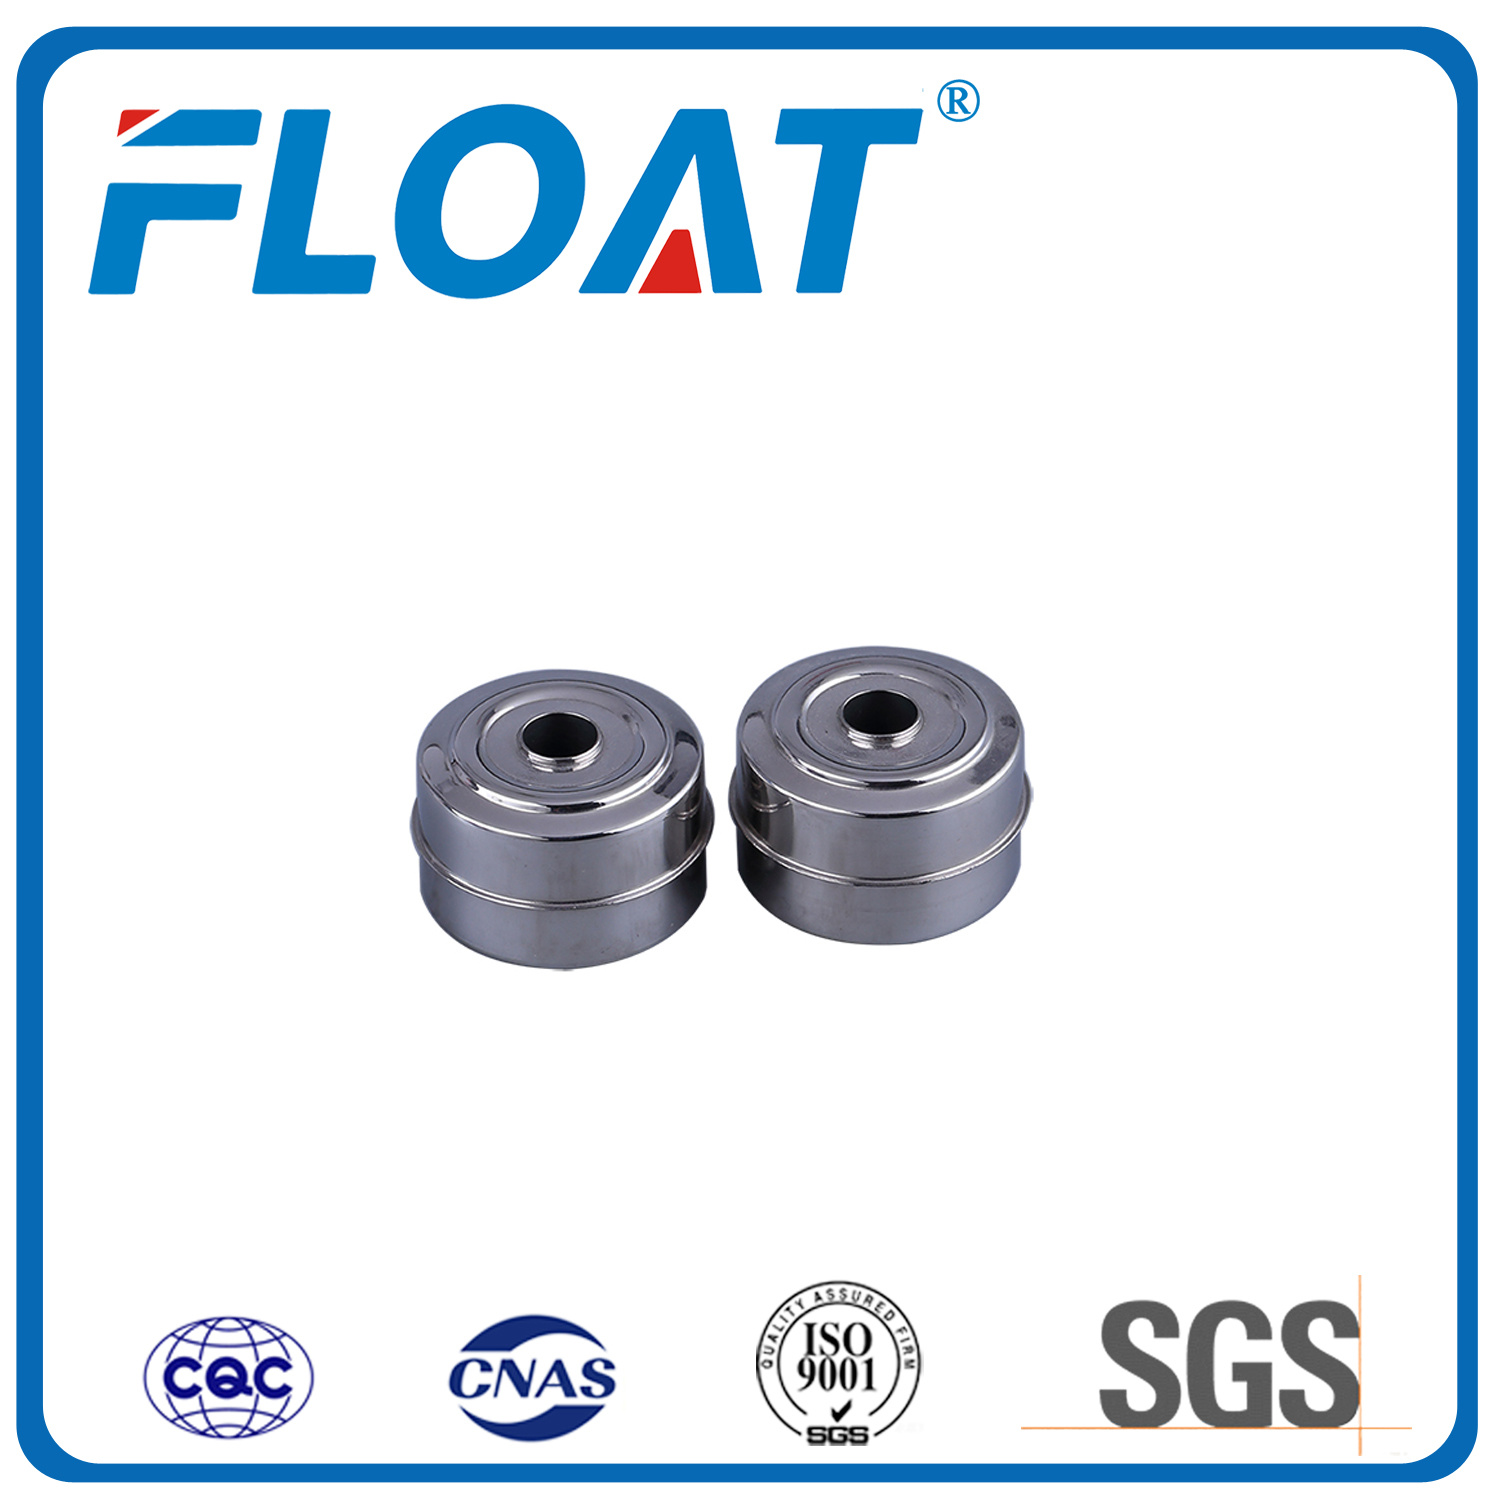 Stainless Steel Float Inside The Magnet for Float Switch